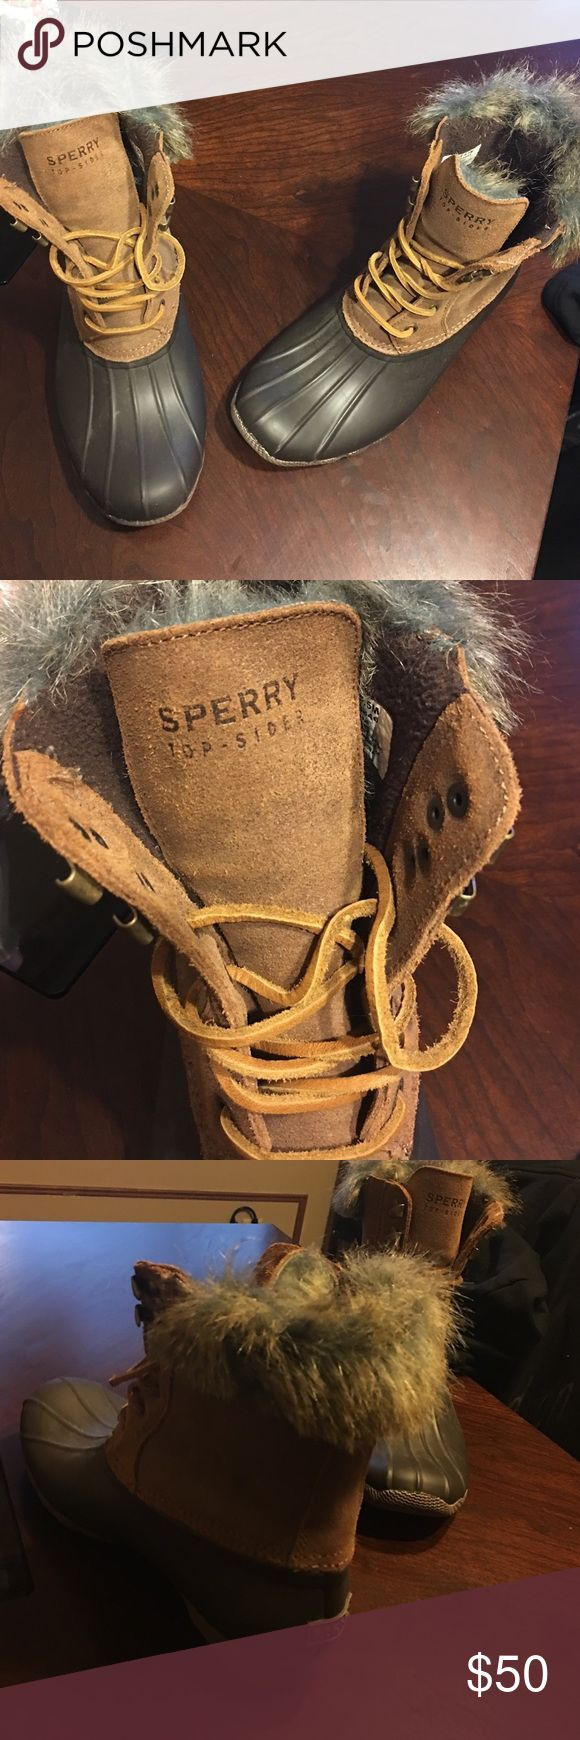 Brown sperry winter boots These boots are in great condition and have only been worn once. They are very comfortable especially with the fur. Great for the cold weather Sperry Shoes Winter & Rain Boots